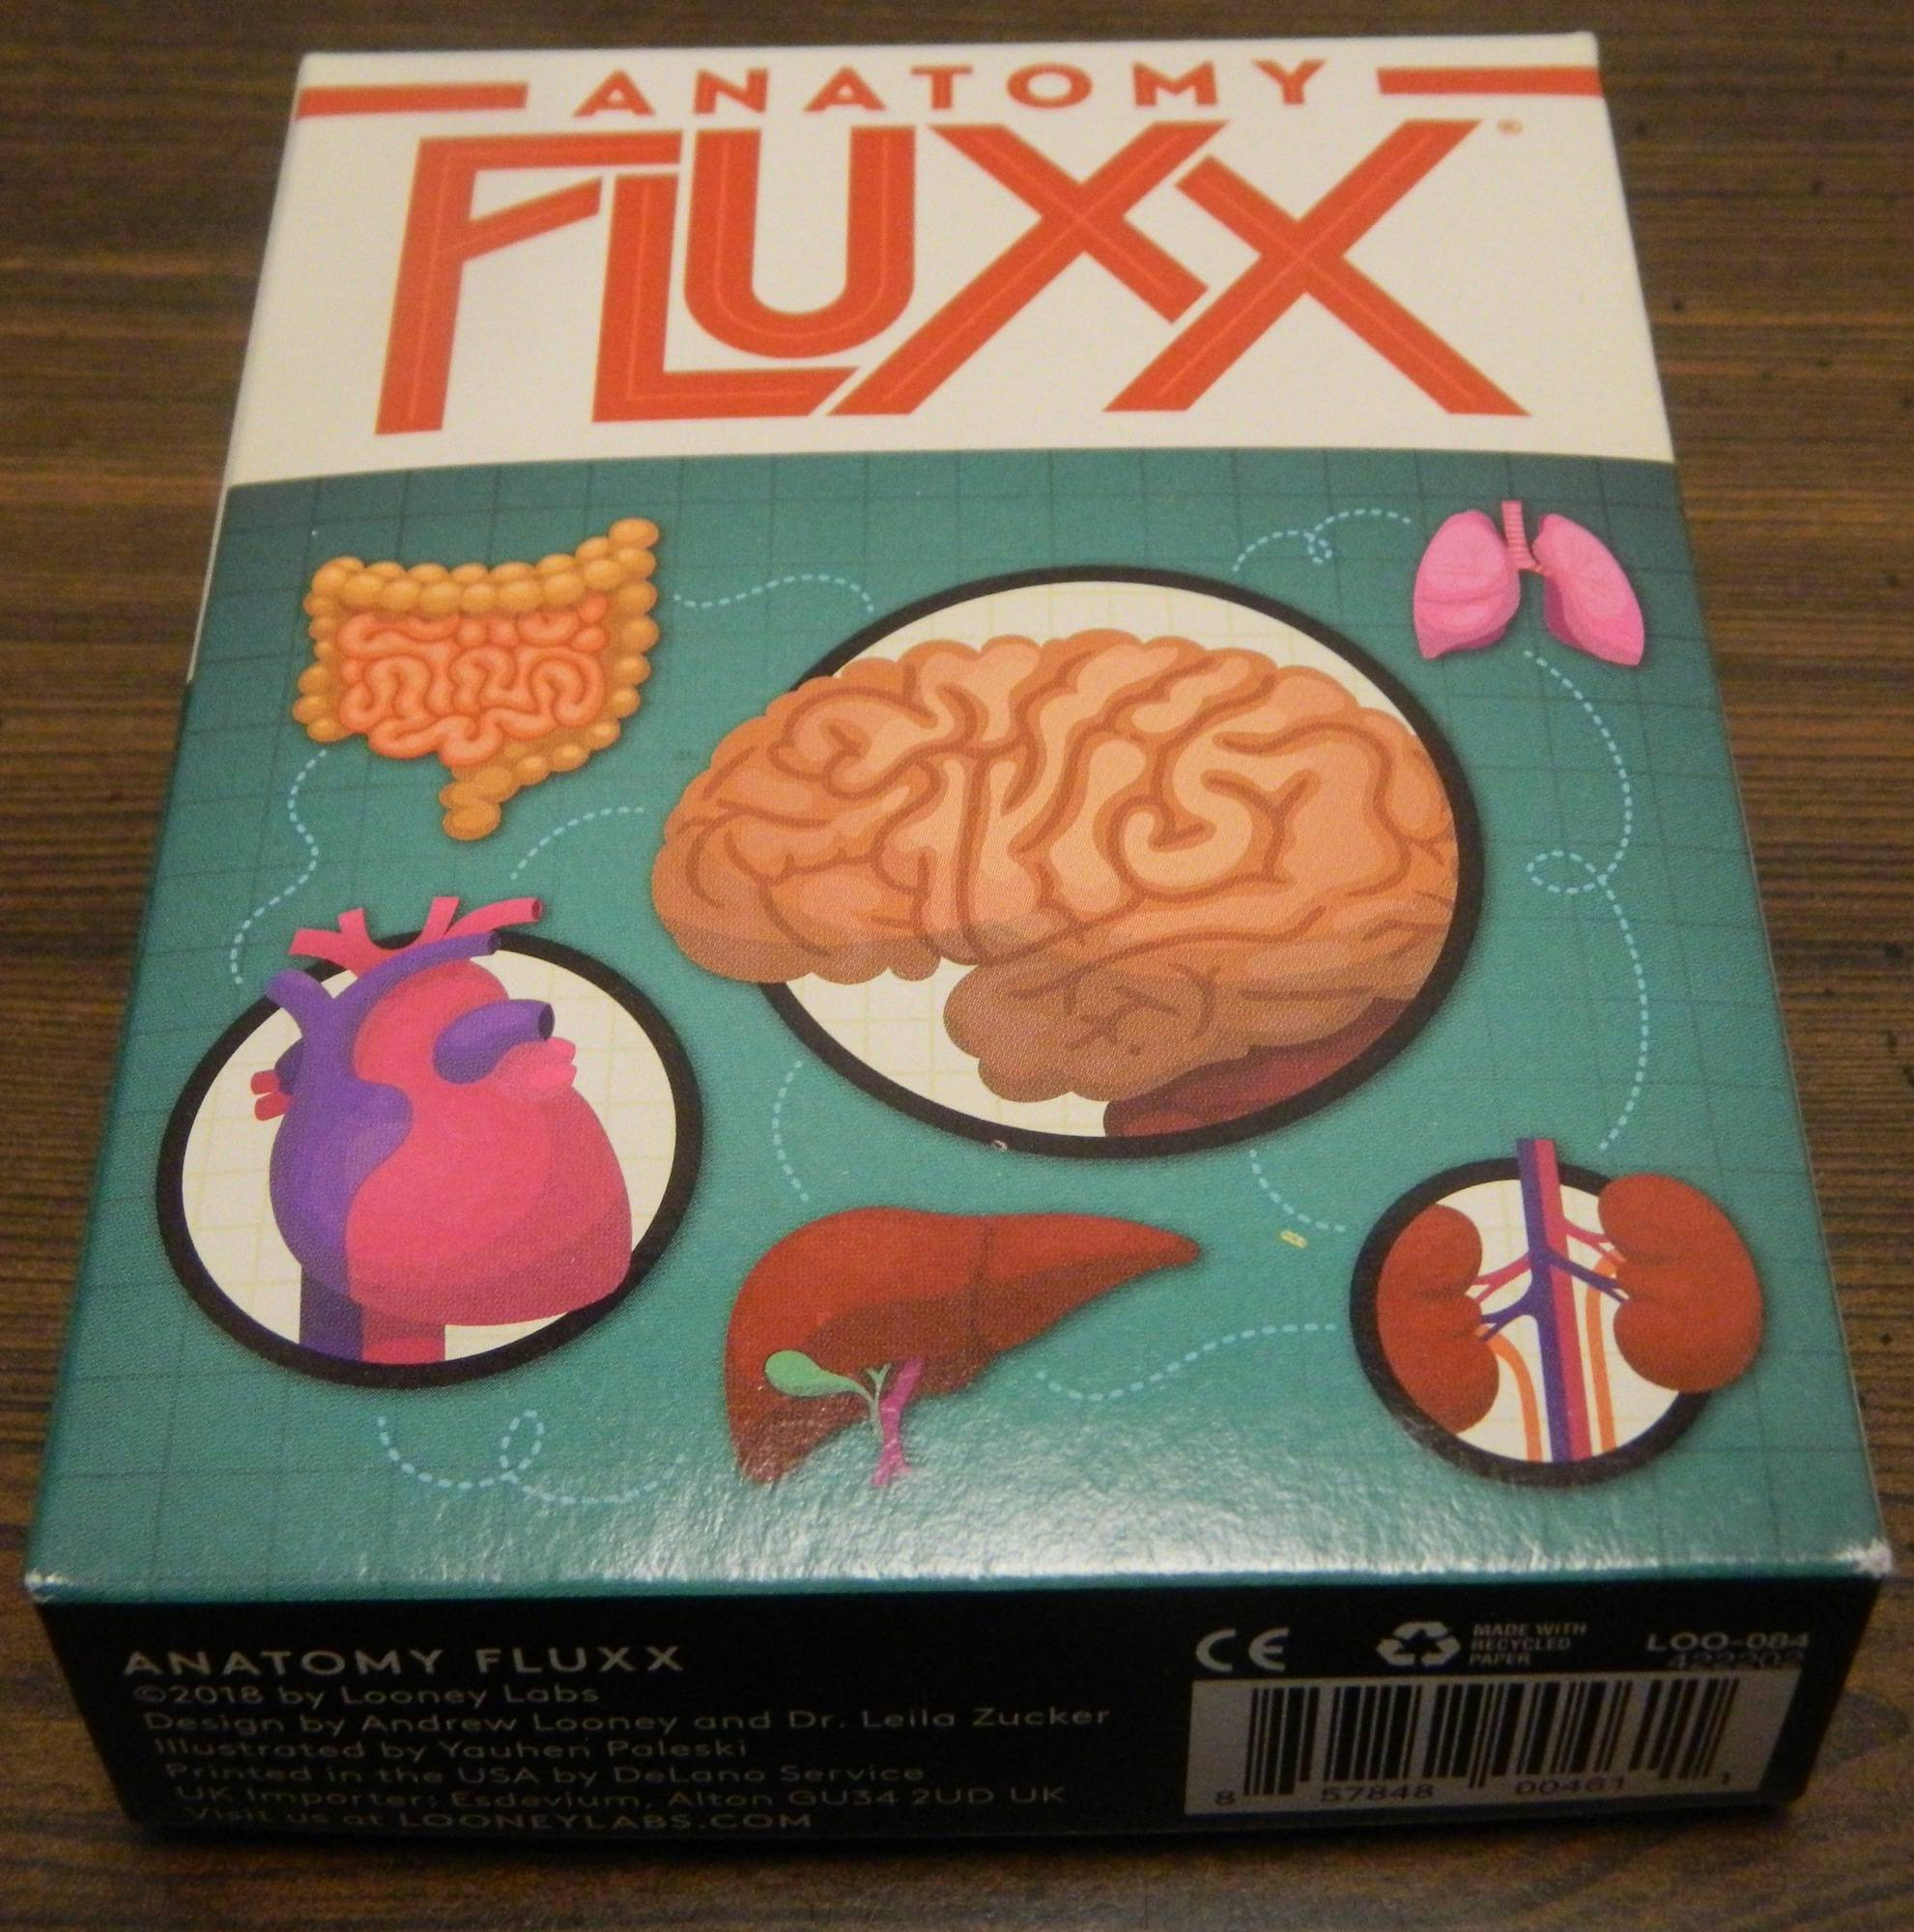 Box for Anatomy Fluxx